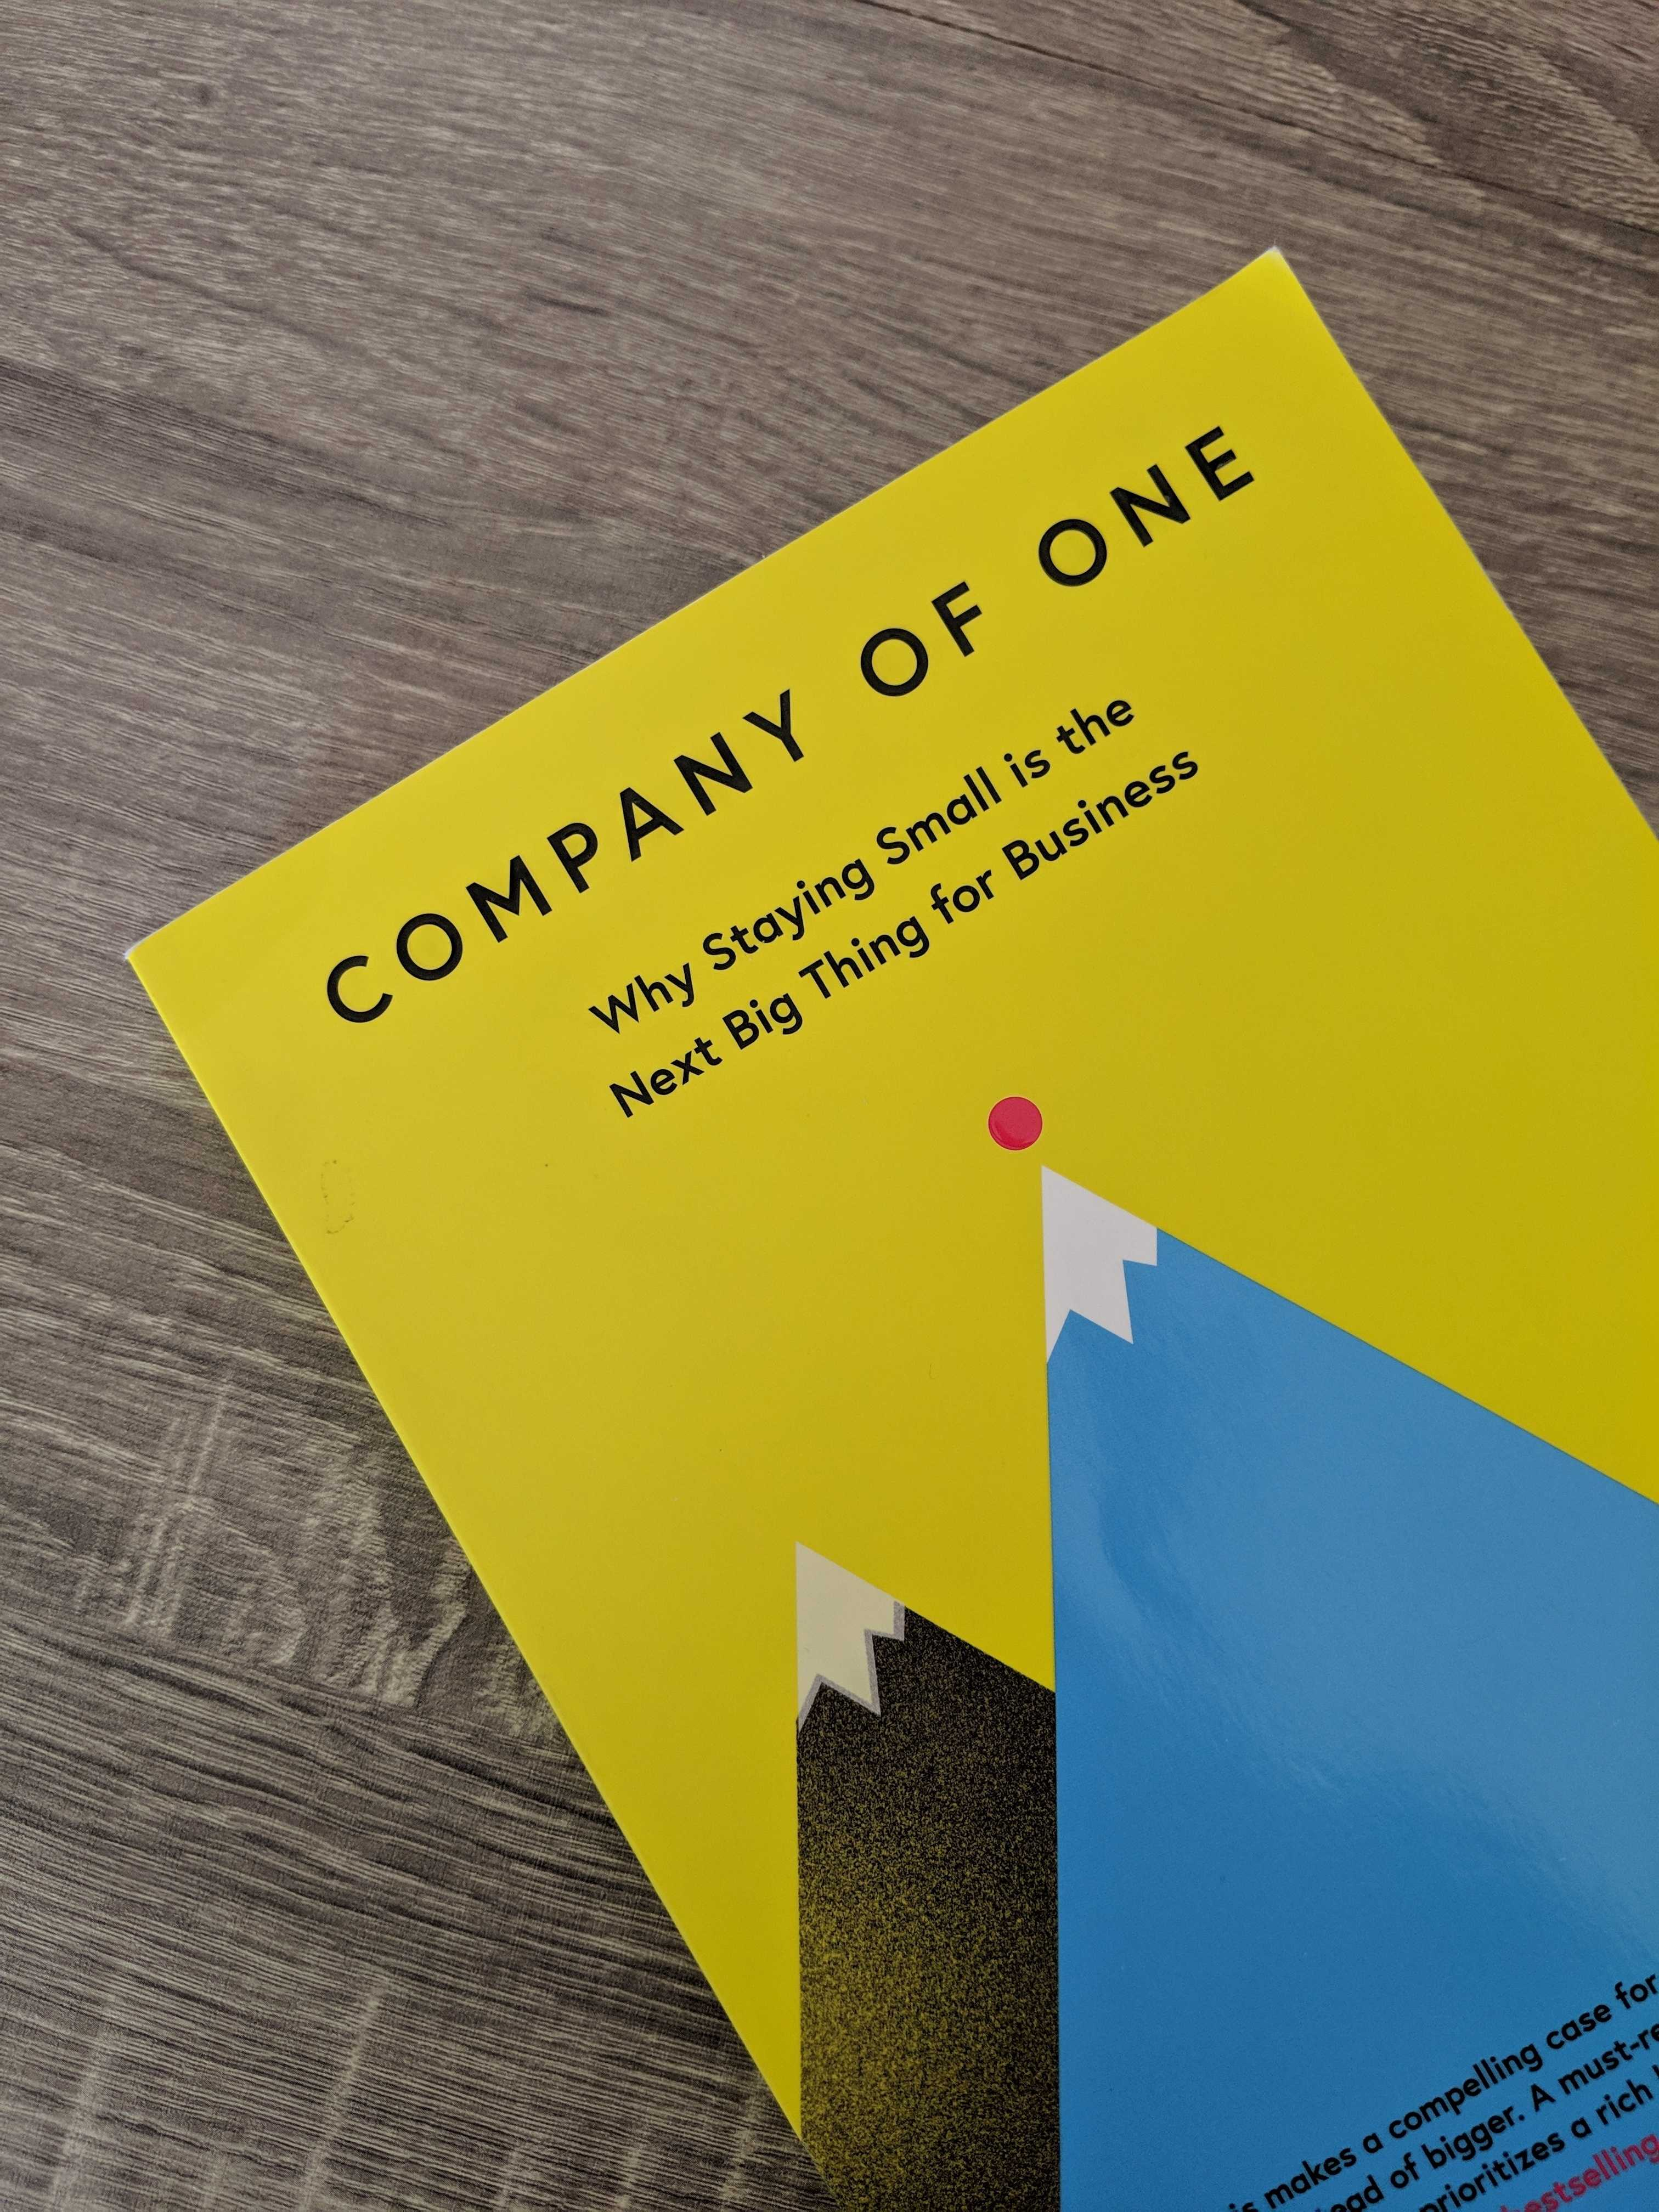 Company Of One book